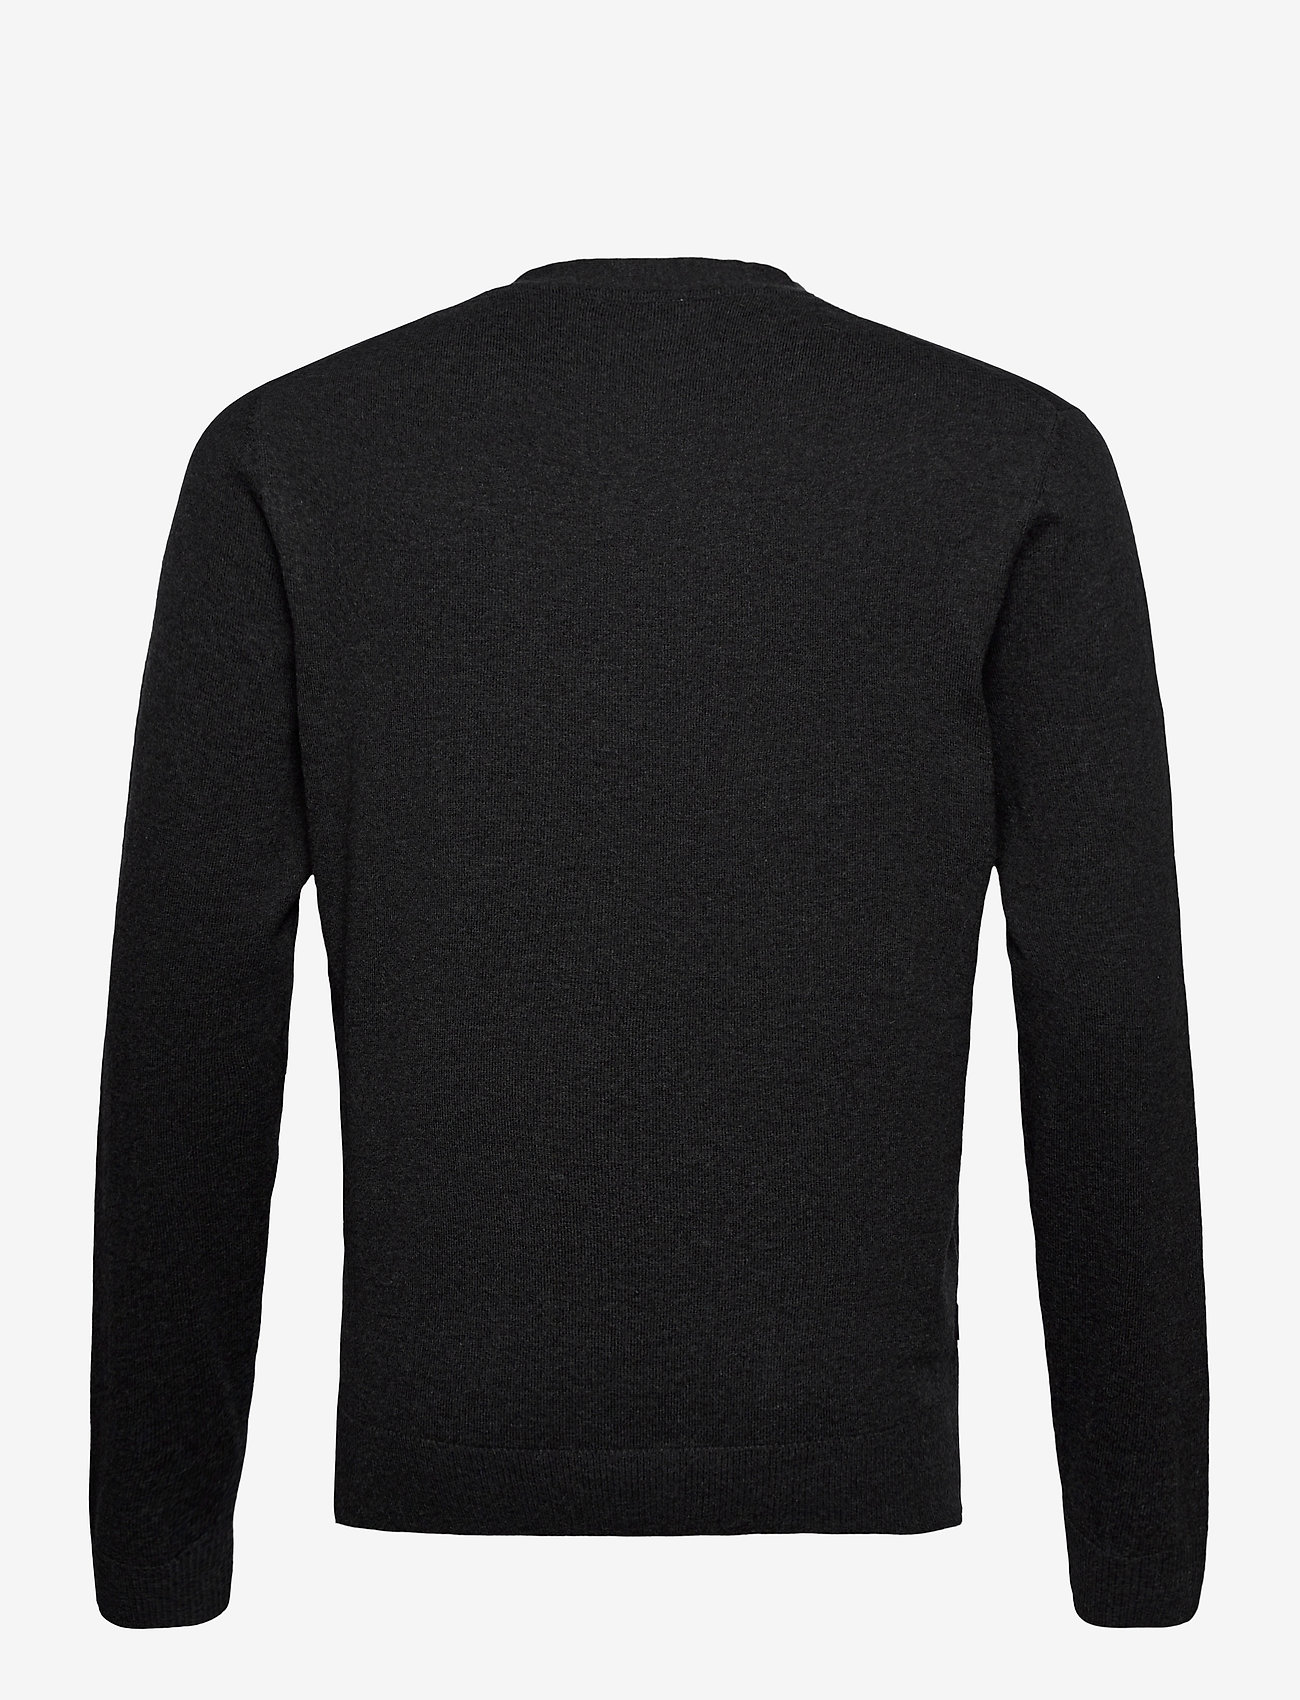 Esprit Casual - Sweaters - tricots basiques - anthracite 5 - 1